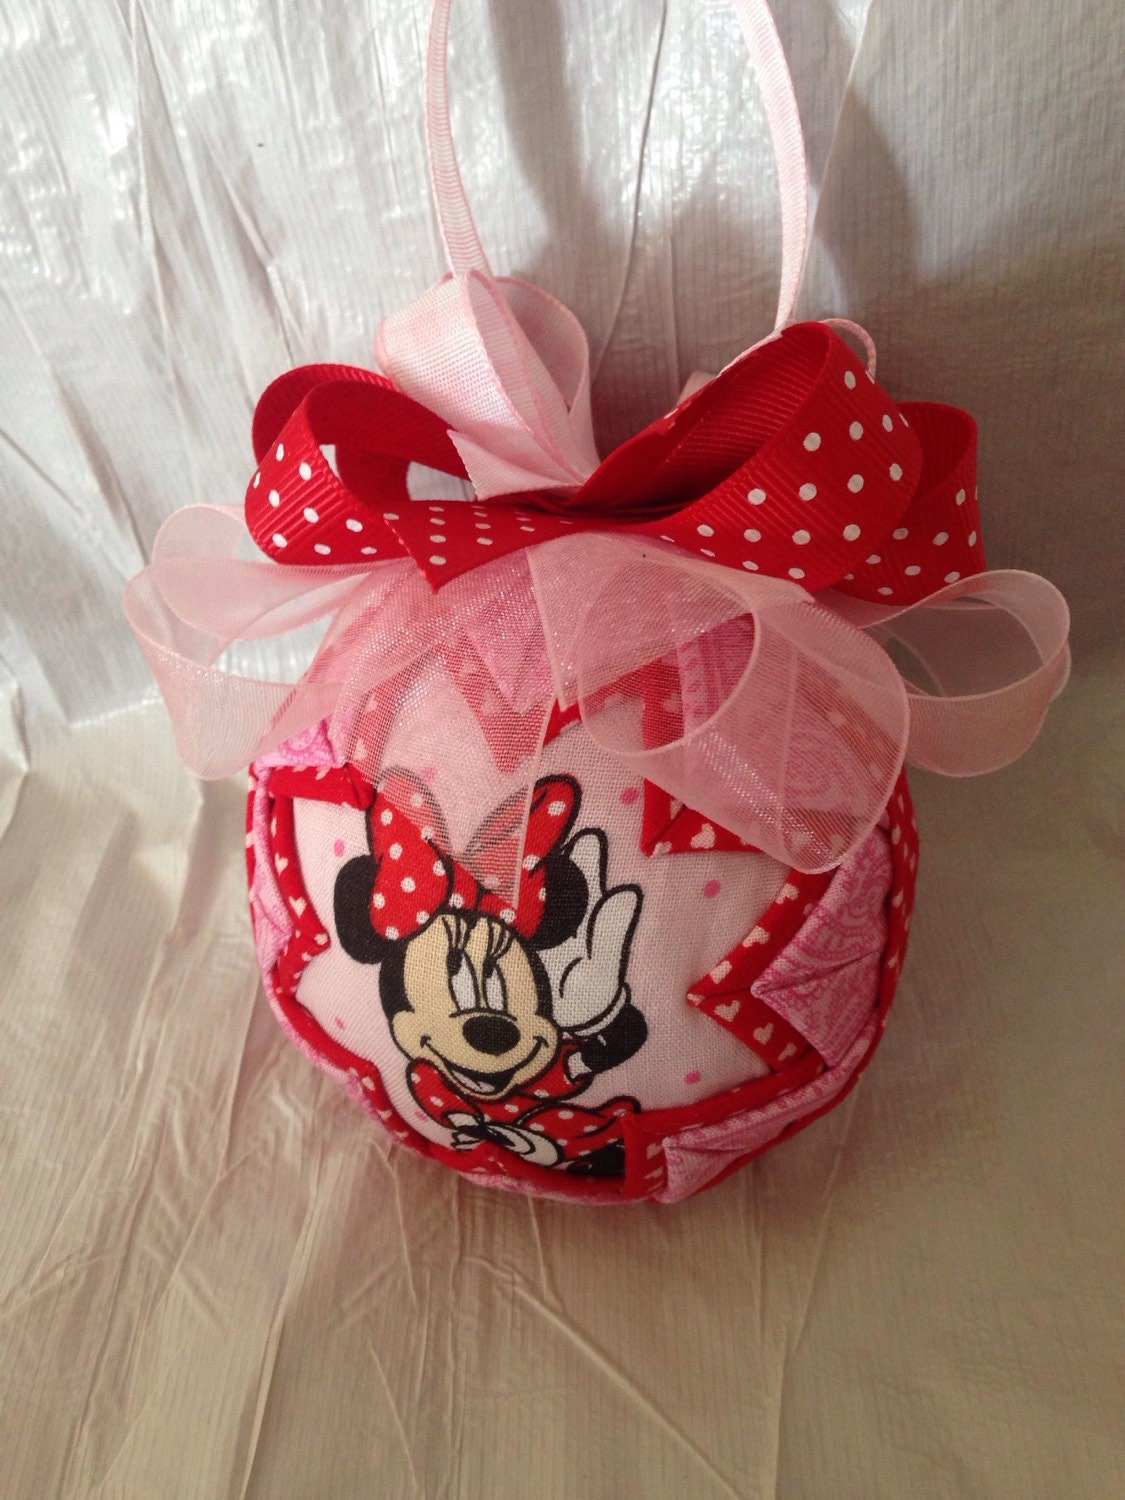 Minnie Mouse Inspired Ornament Quilted Christmas Ornament